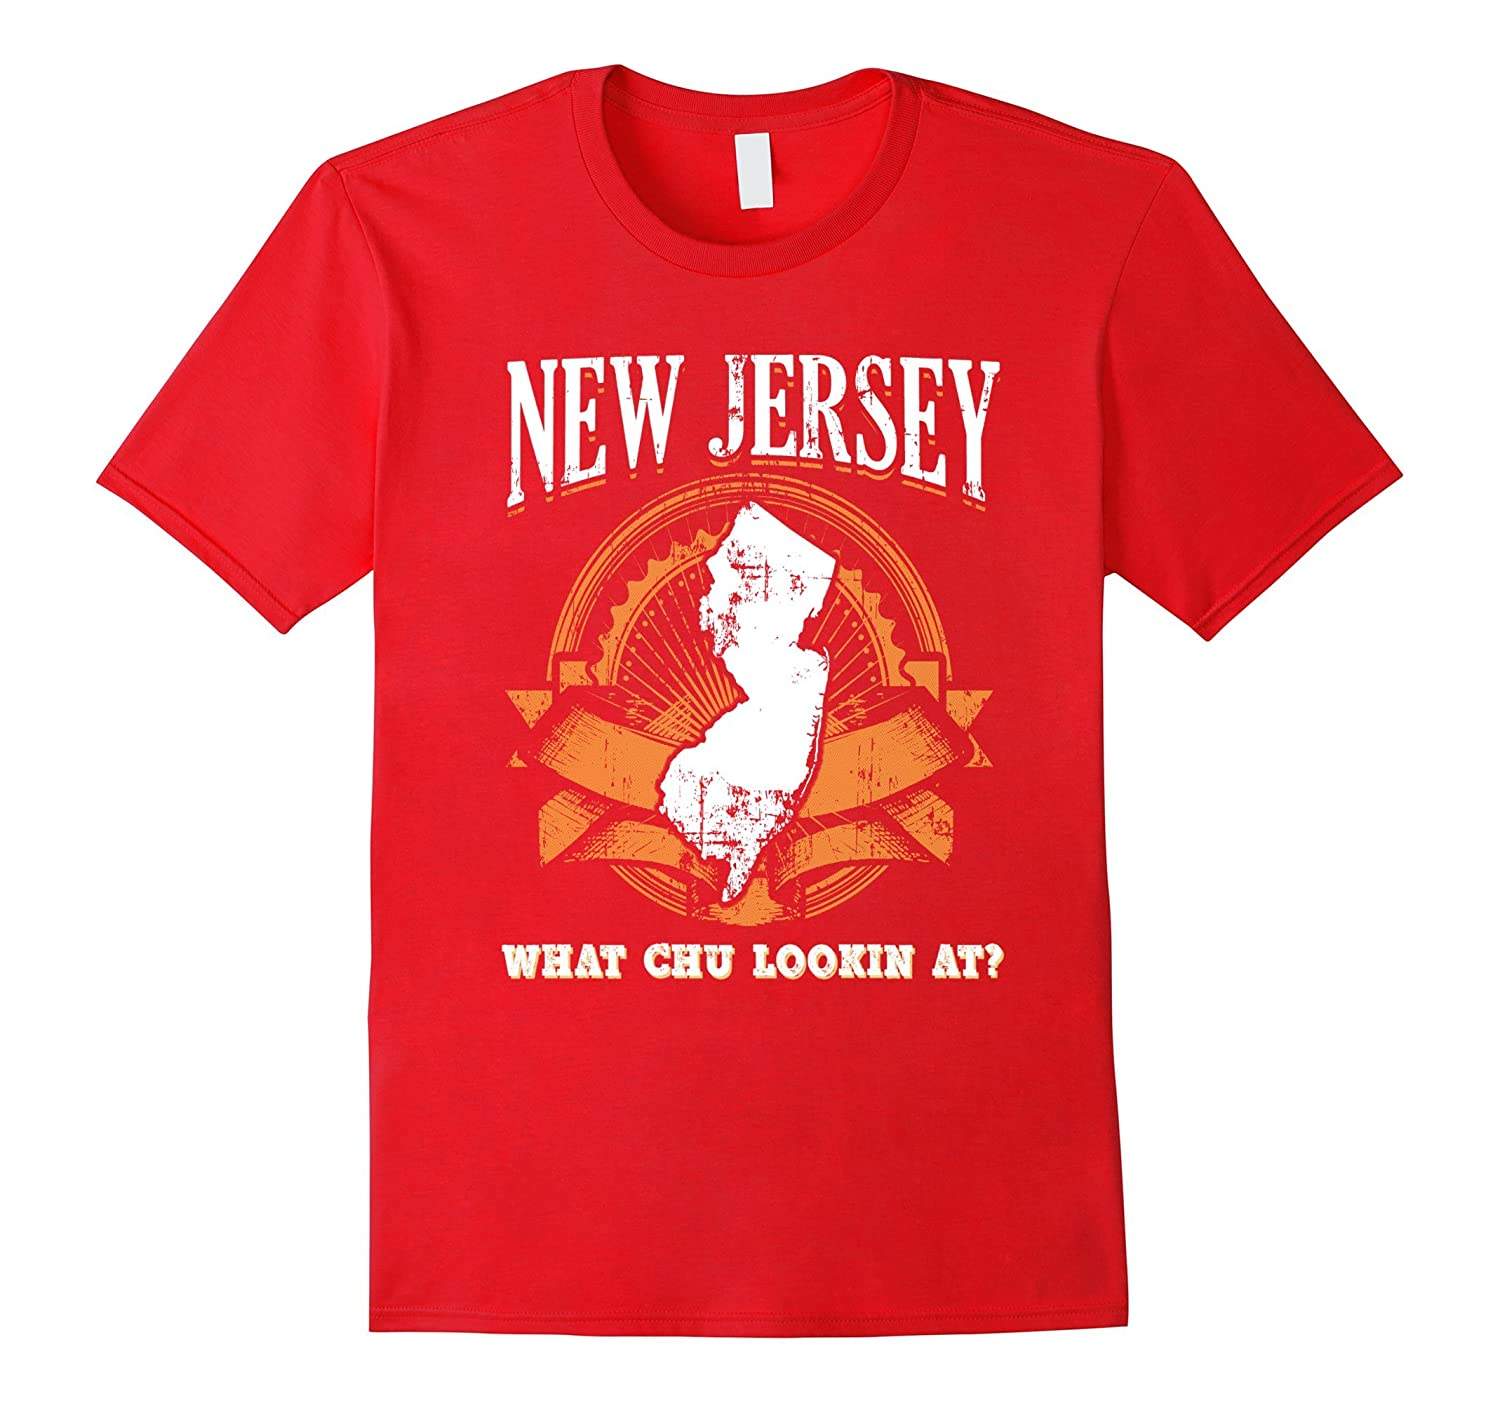 New Jersey Funny Shirt Fake State Motto Slogan Gag Gift USA-Vaci